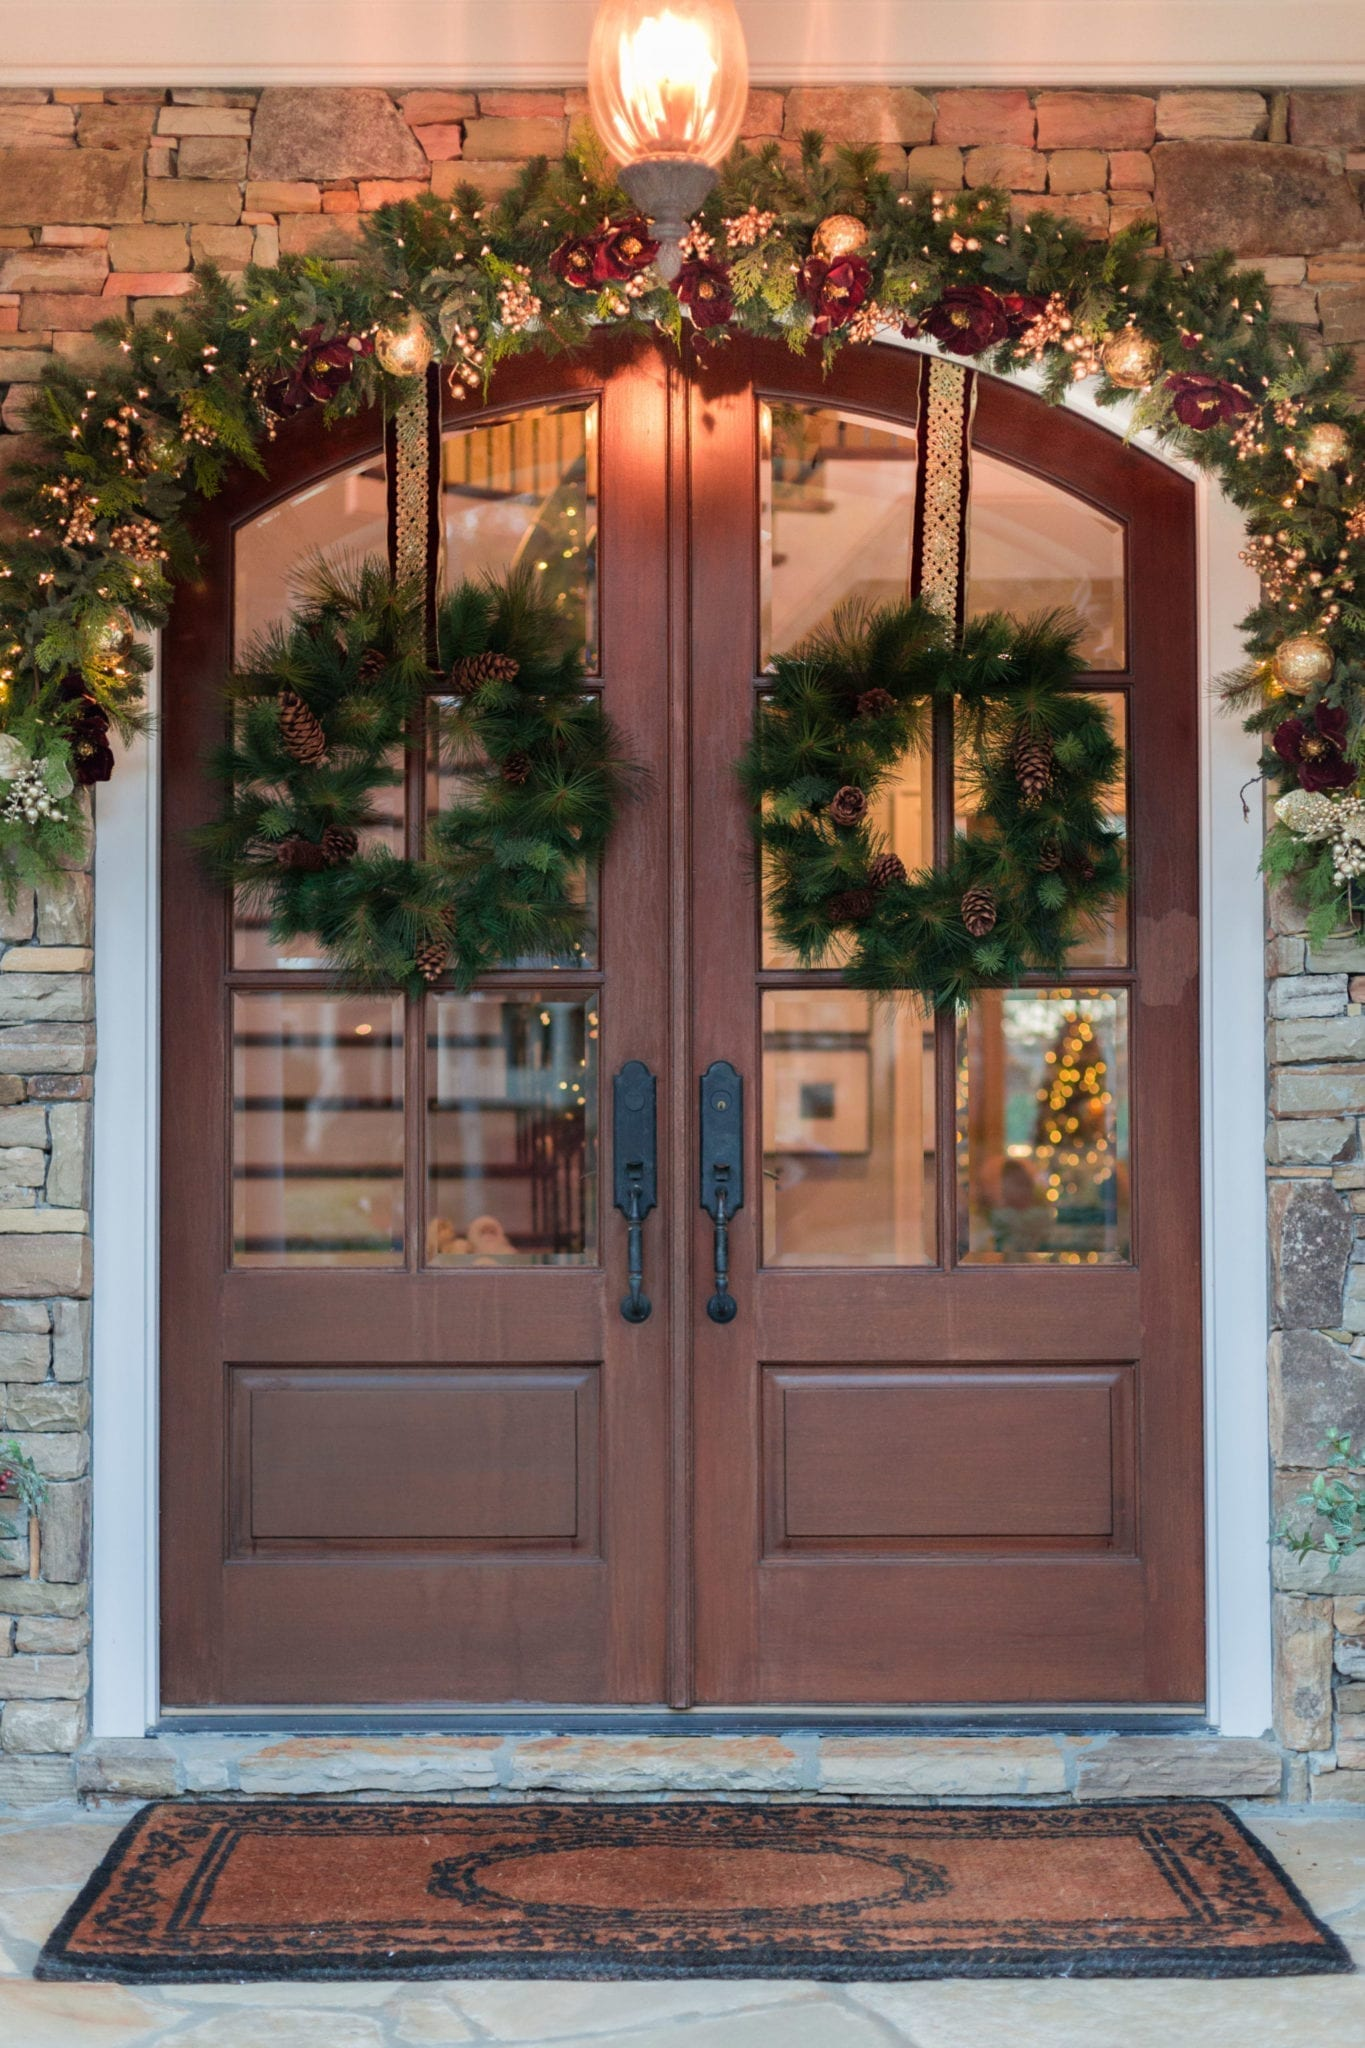 How to Hang Garland on Stone Outside. Front door holiday decorating with wreaths and garland.